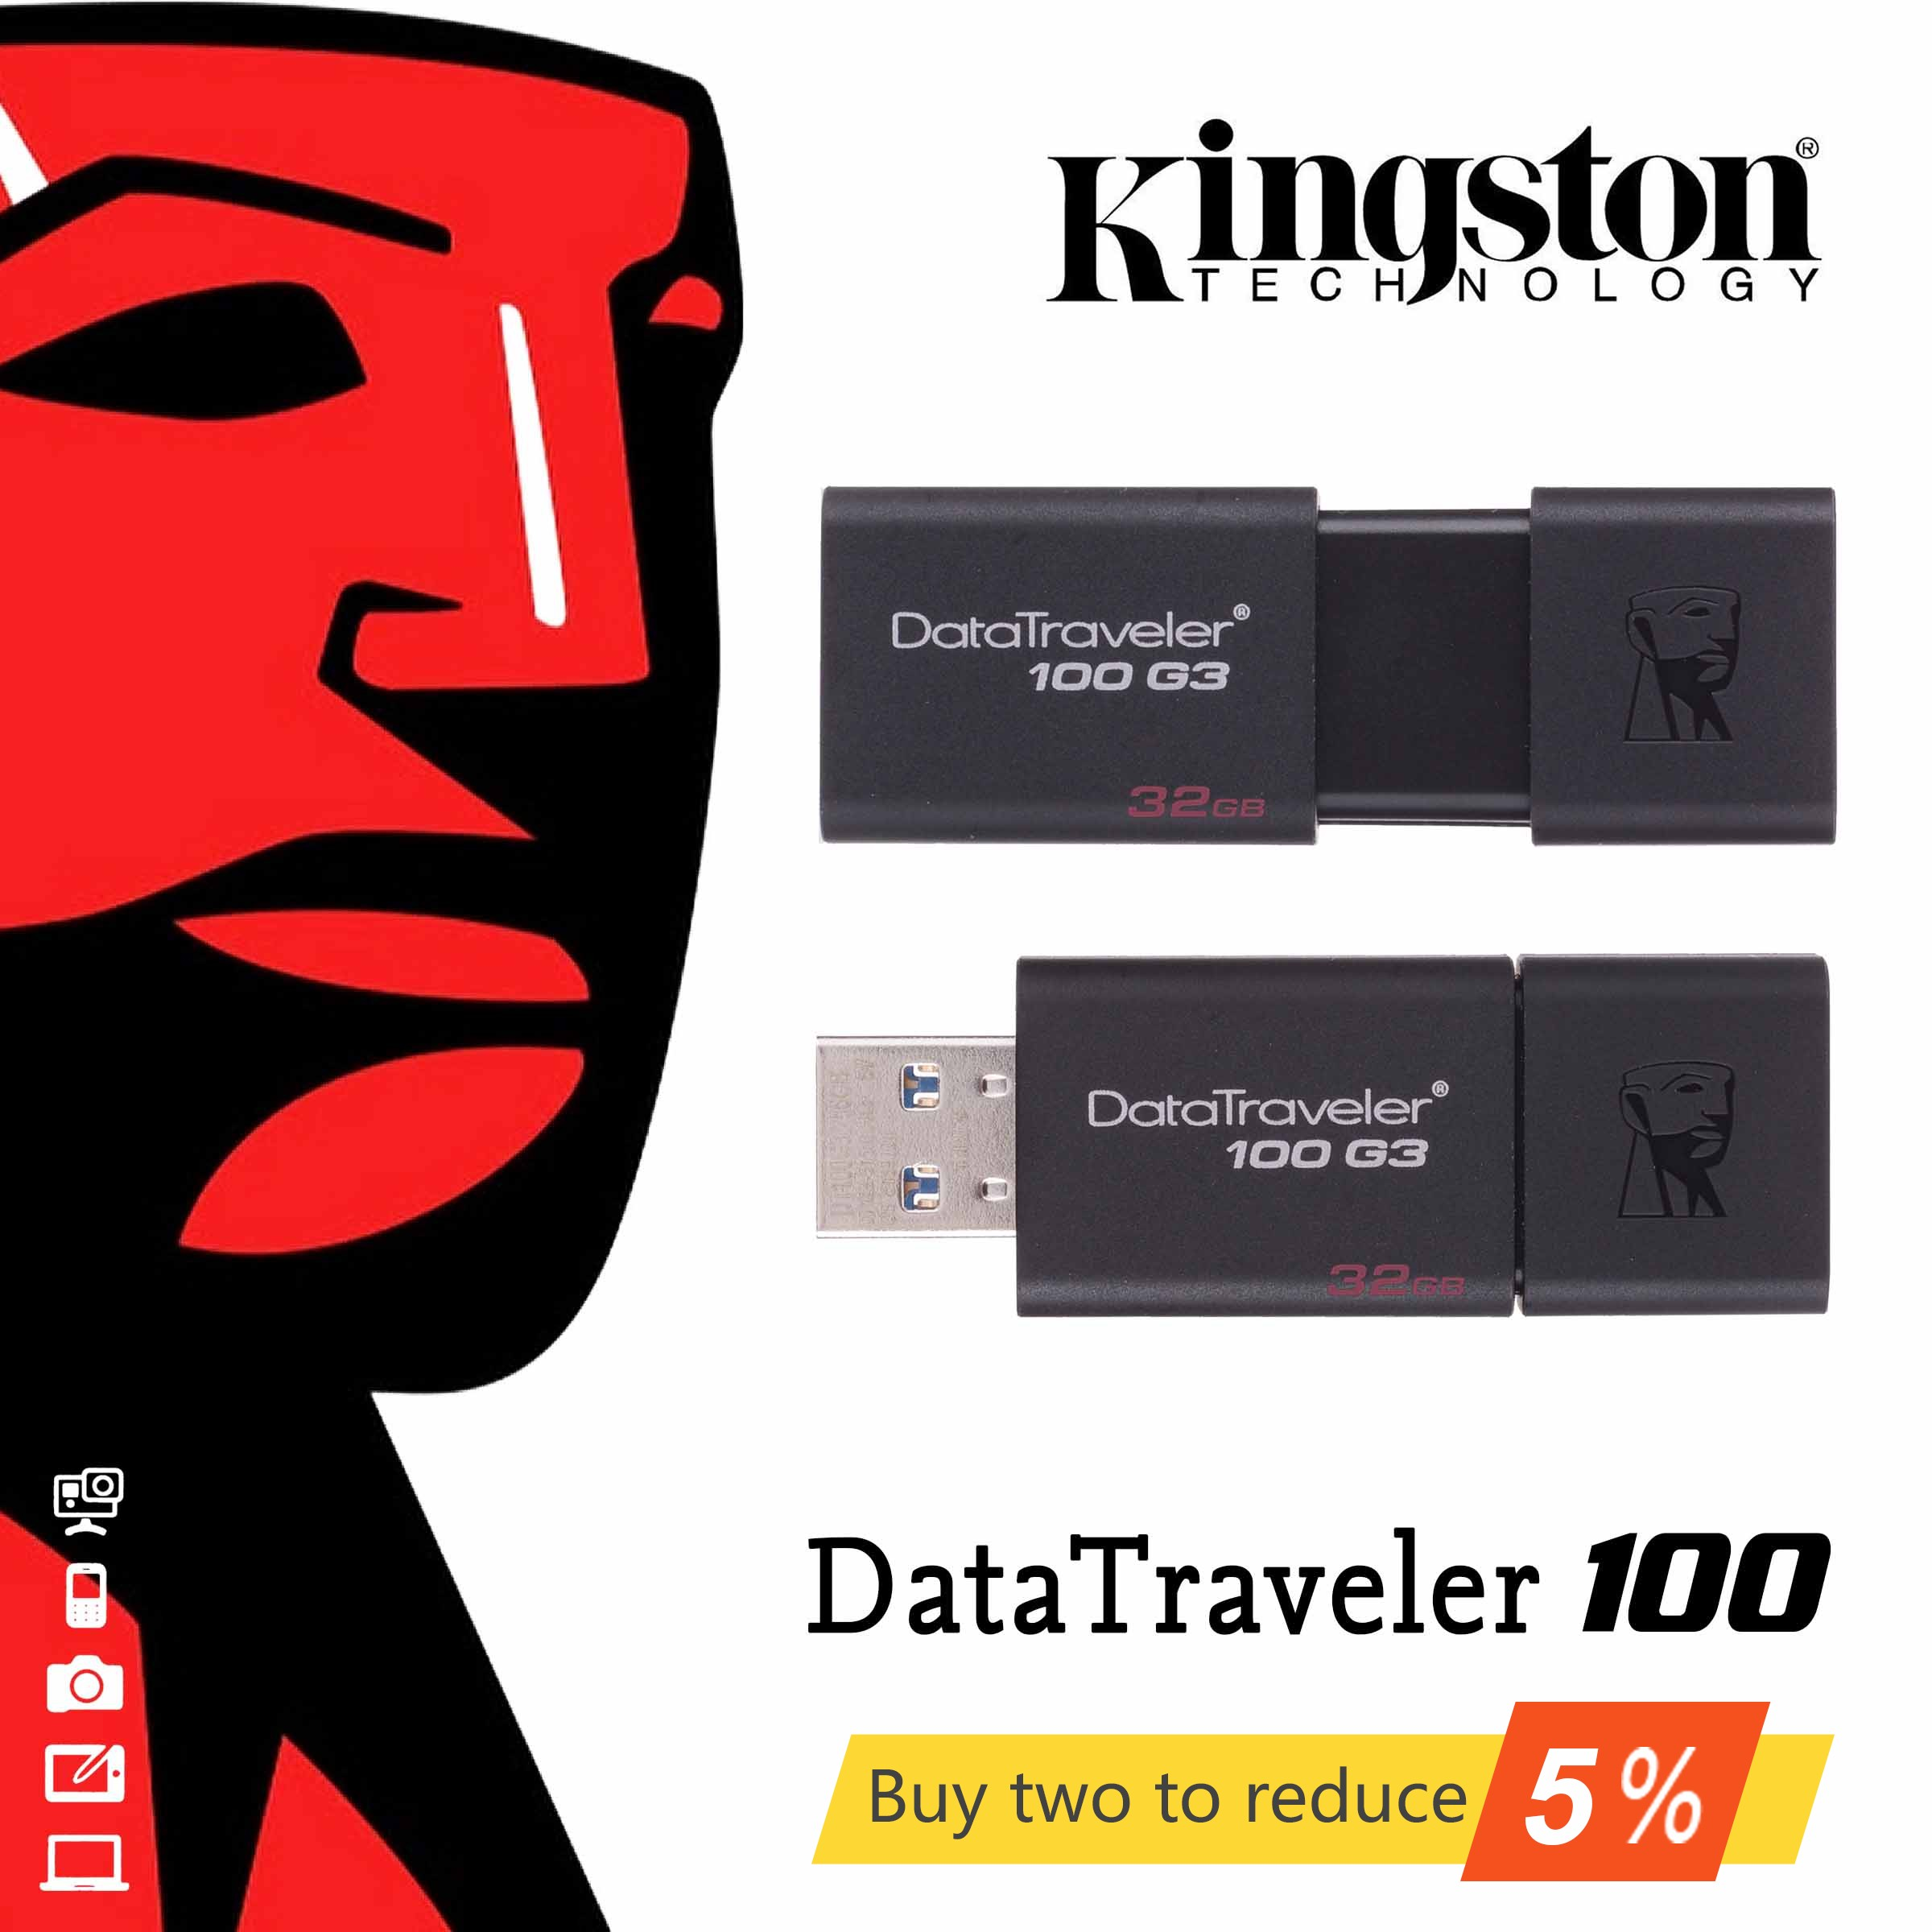 Original Kingston DataTraveler 100 G3 USB Flash Drives 16GB 32GB 64GB 128GB USB 3.0 Pen Drive High Speed PenDrives DT100G3